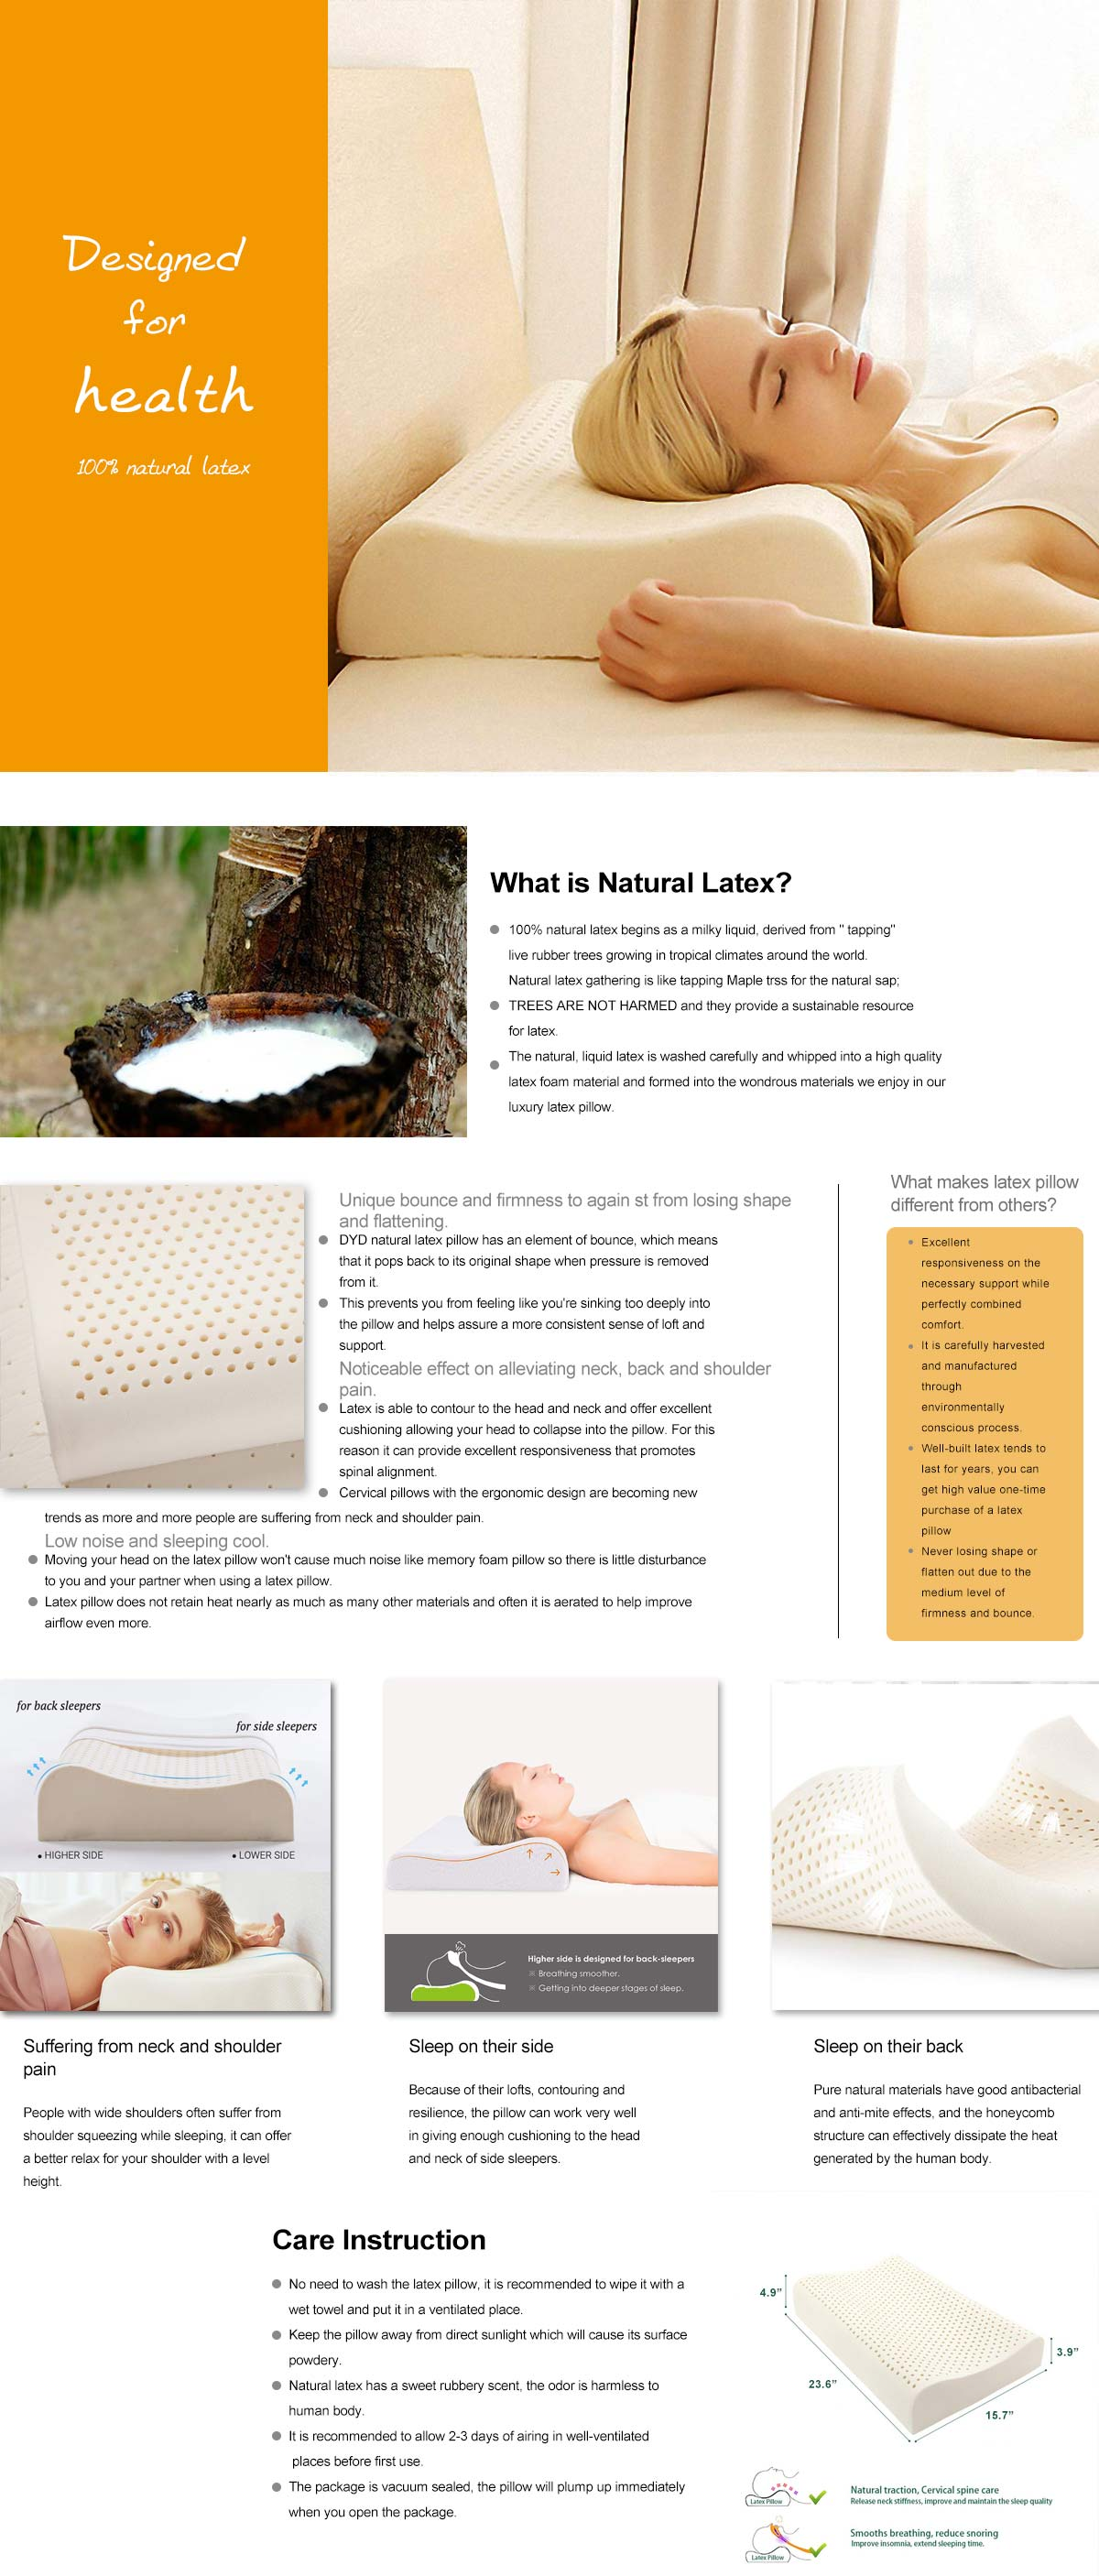 100% Natural Latex Pillow